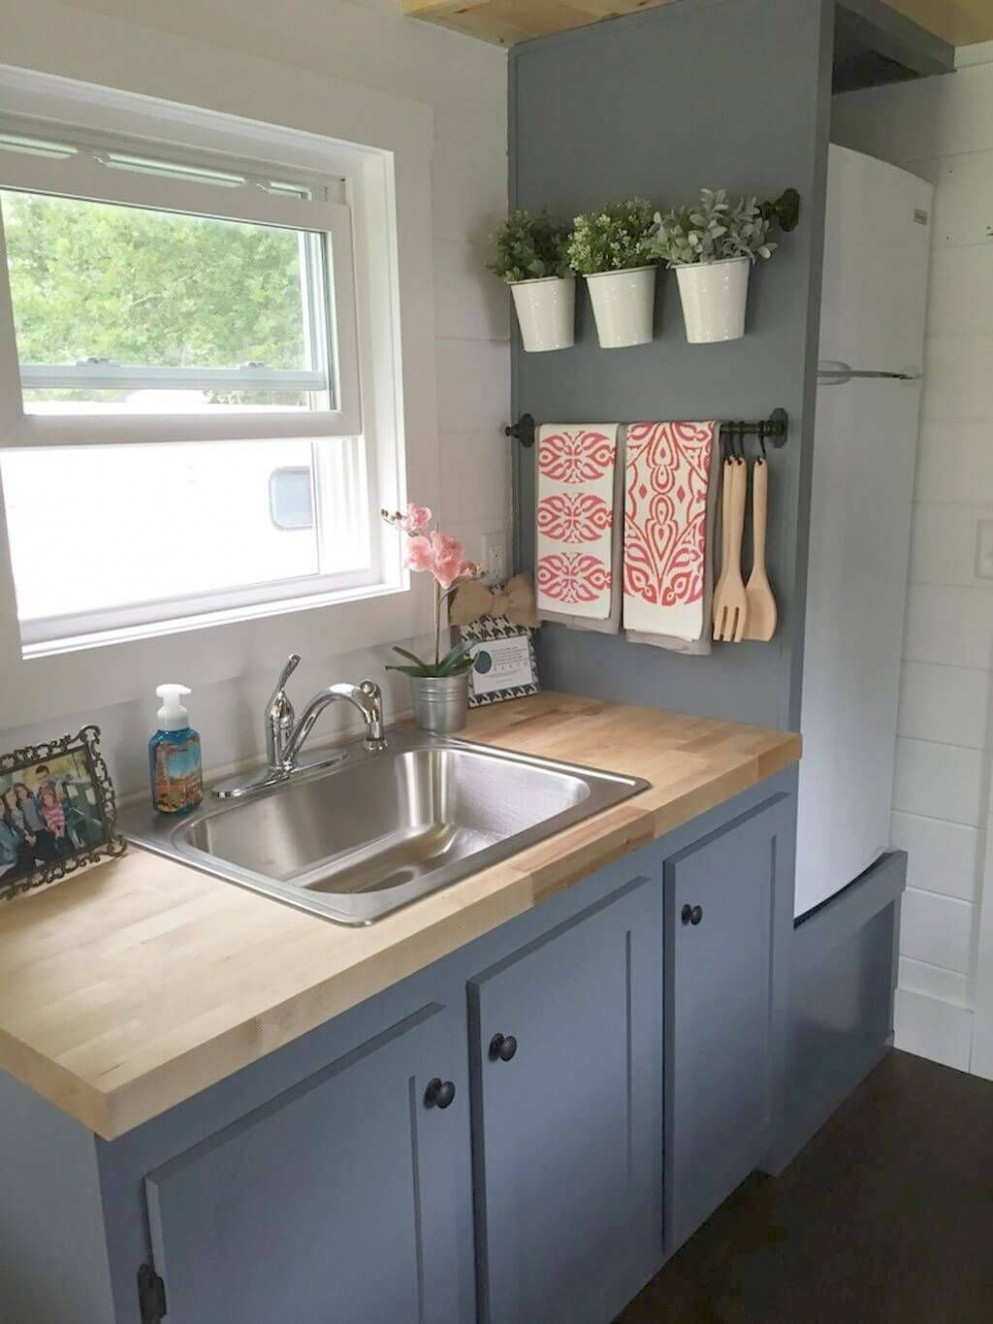 8 Nifty Small Kitchen Design and Decor Ideas to Transform Your  - Small Apartment Kitchen Decor Ideas